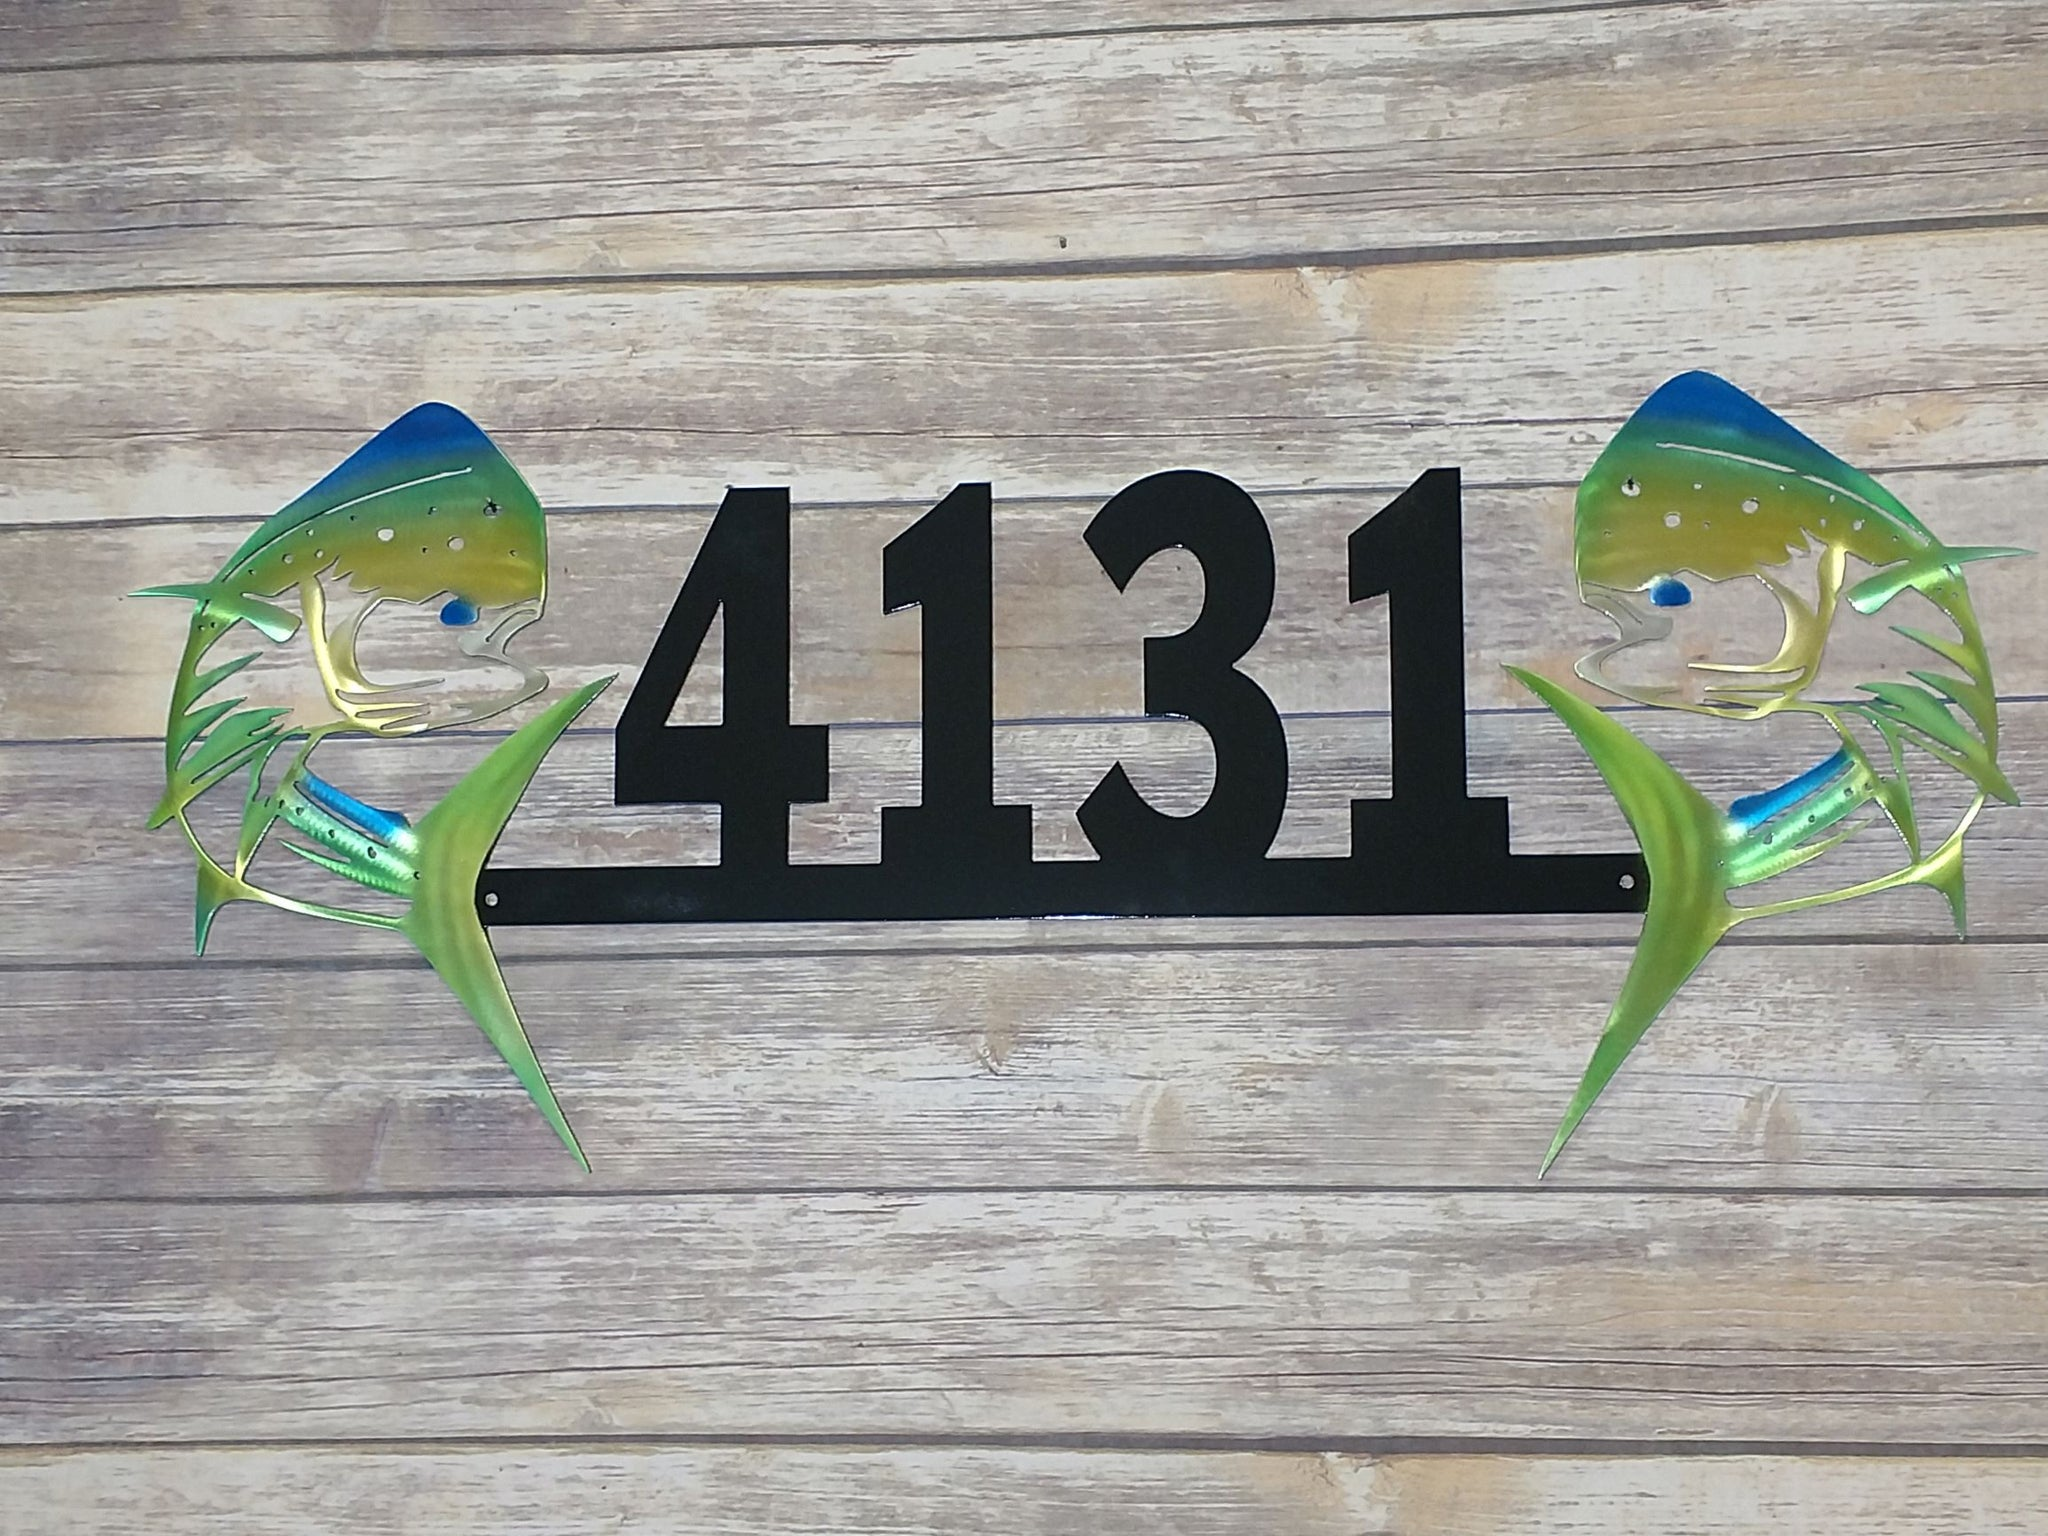 Dueling Mahi Address Airbrushed